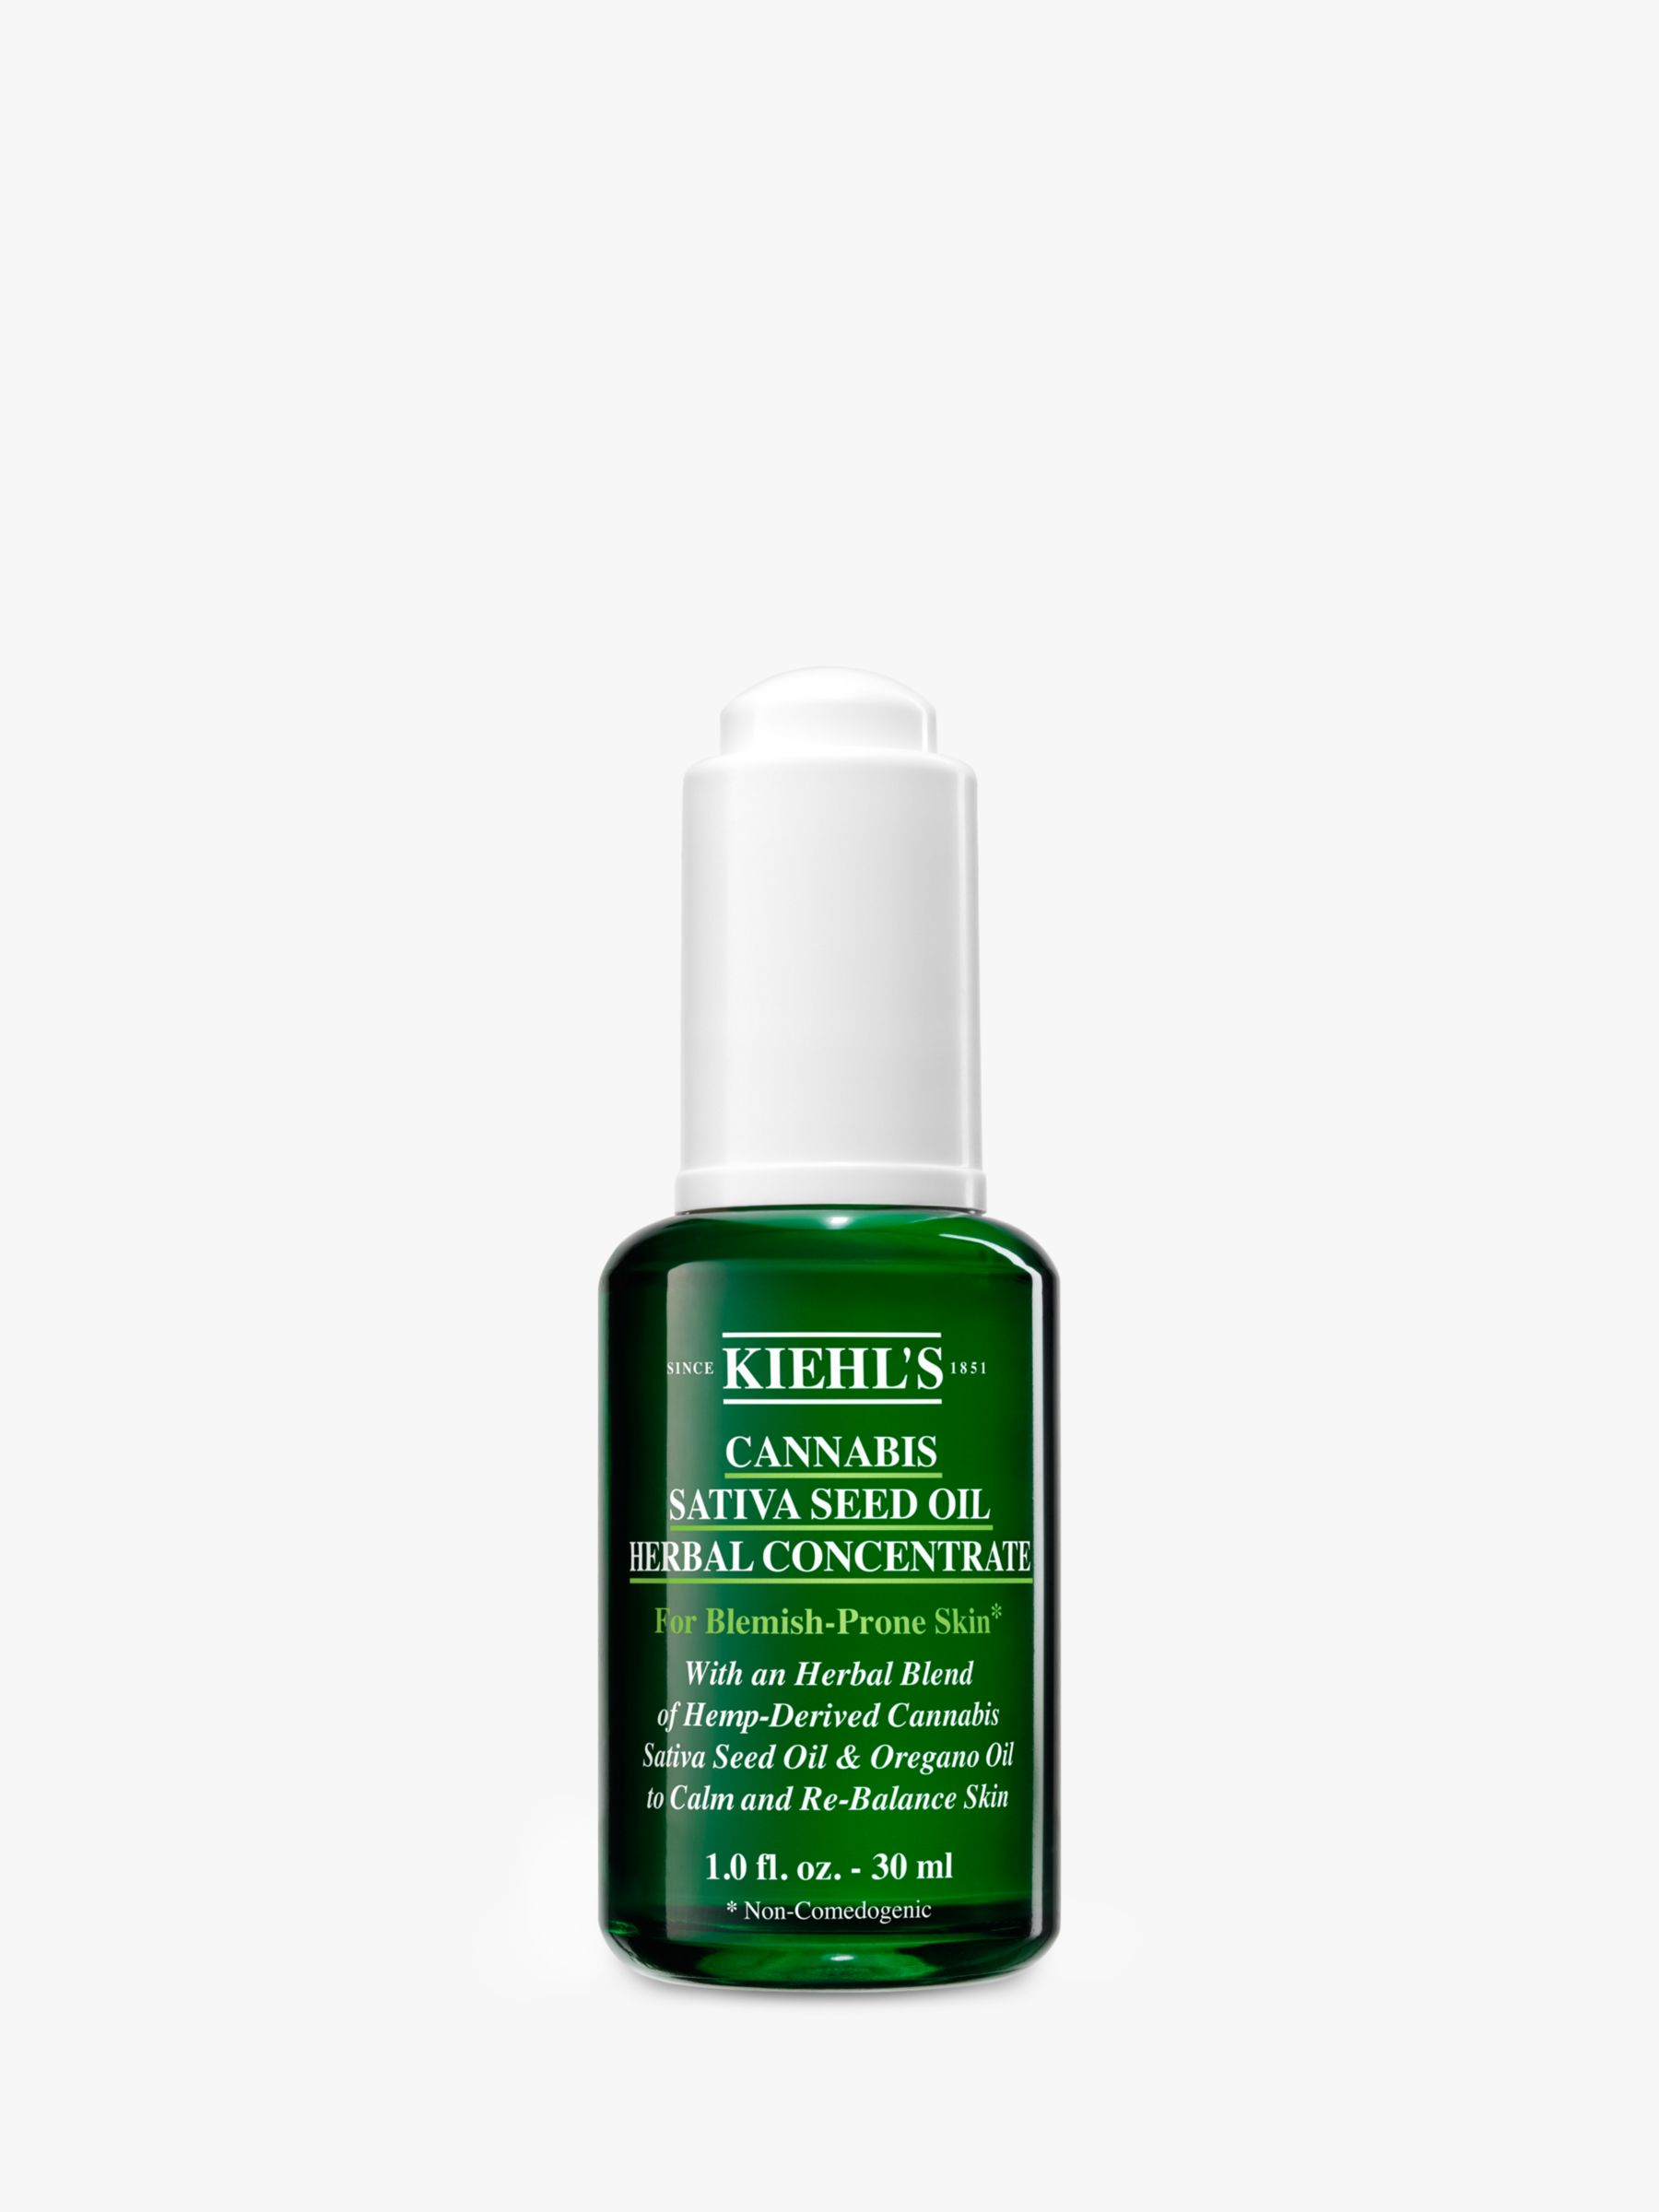 Kiehls Kiehl's Cannabis Sativa Seed Oil Herbal Concentrate, 30ml